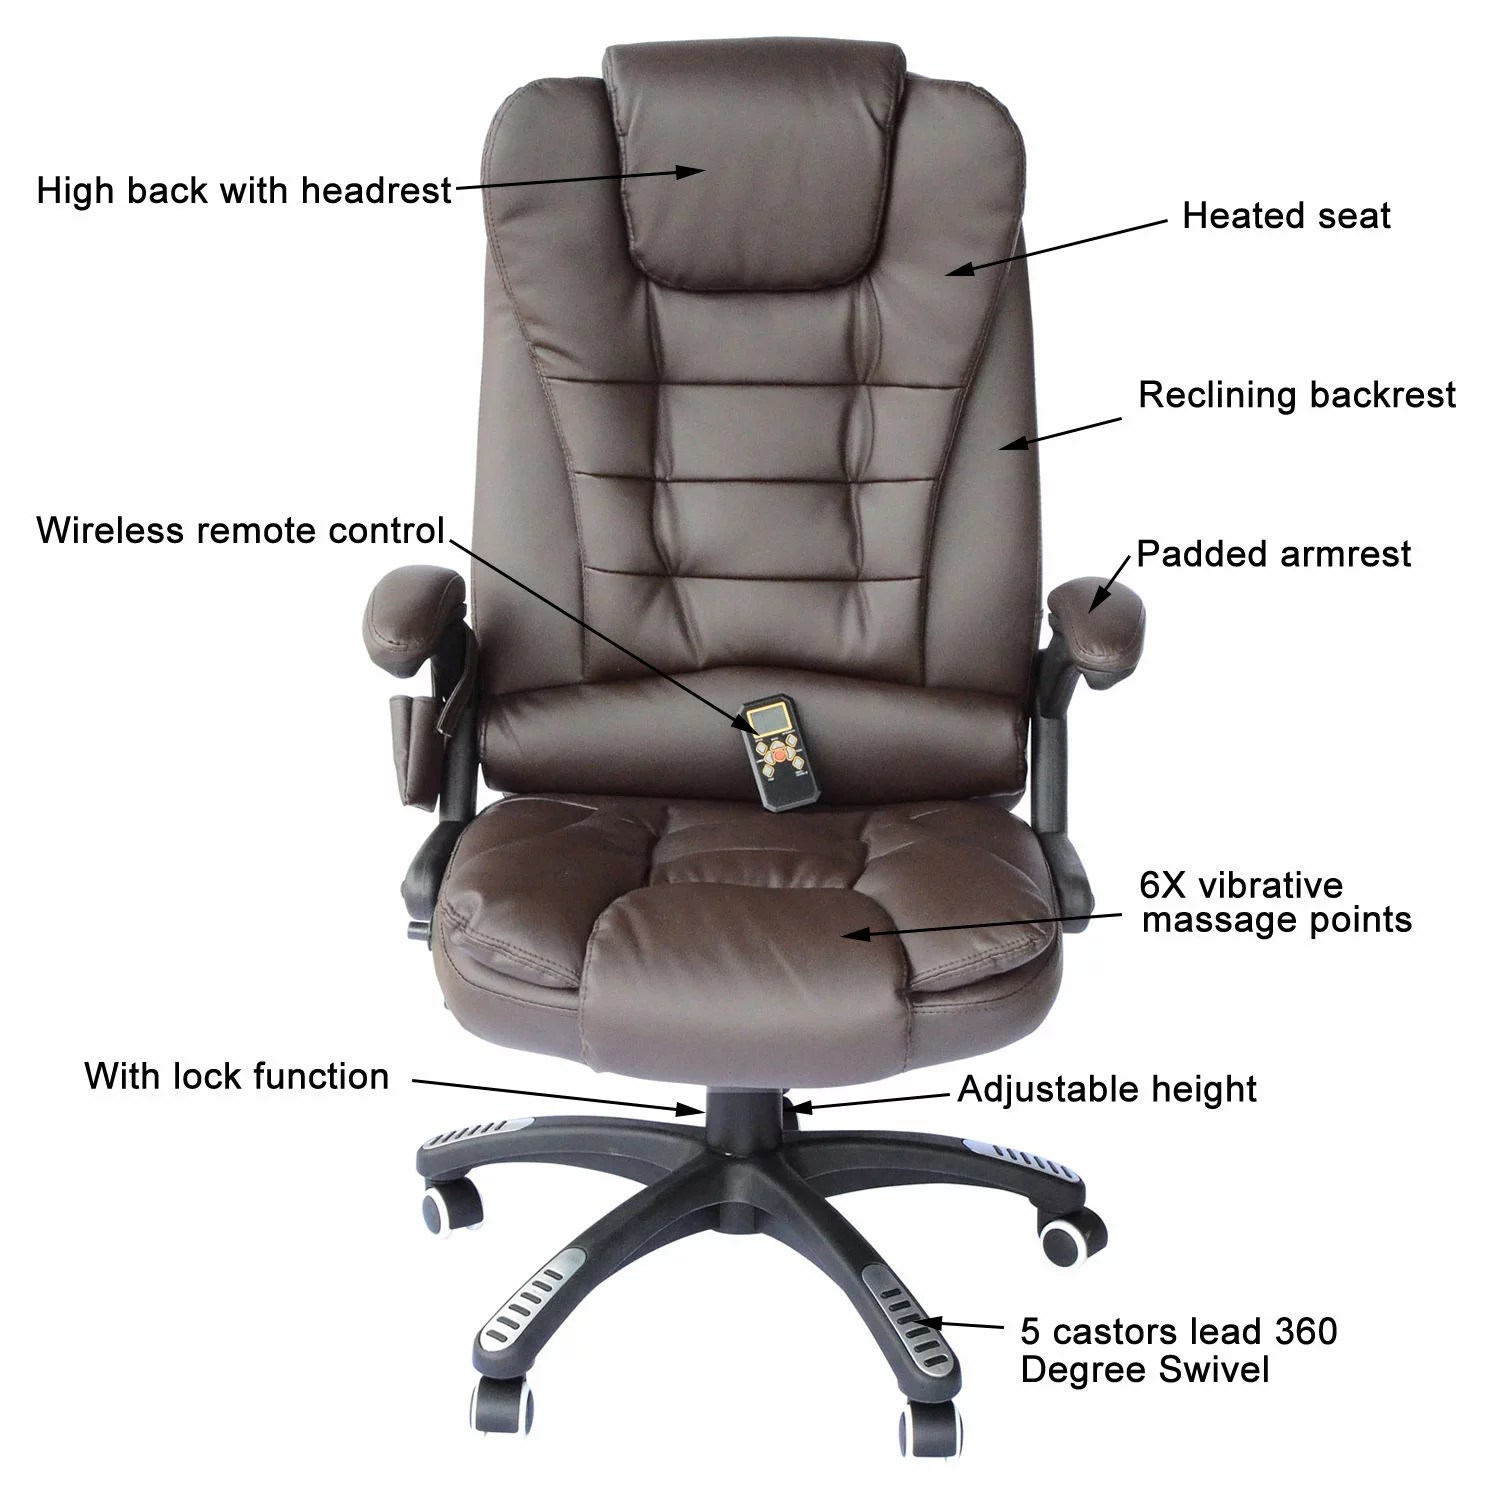 Massage Office Chair Homcom High Back Executive Ergonomic Pu Leather Heated Vibrating Massage Office Chair Brown